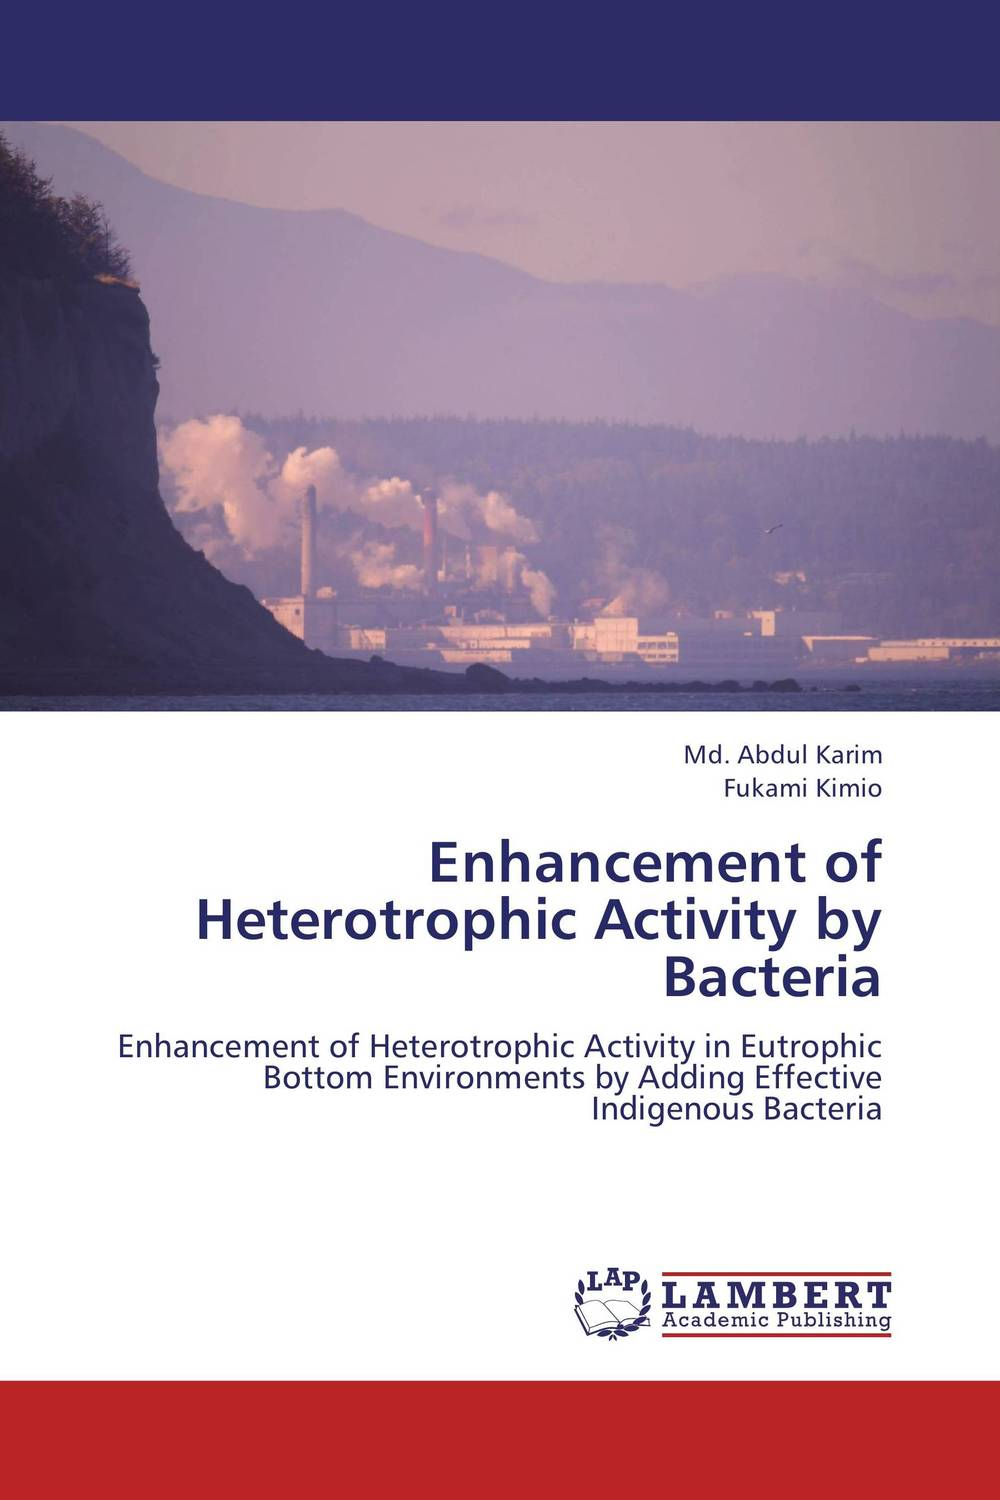 Enhancement of Heterotrophic Activity by Bacteria